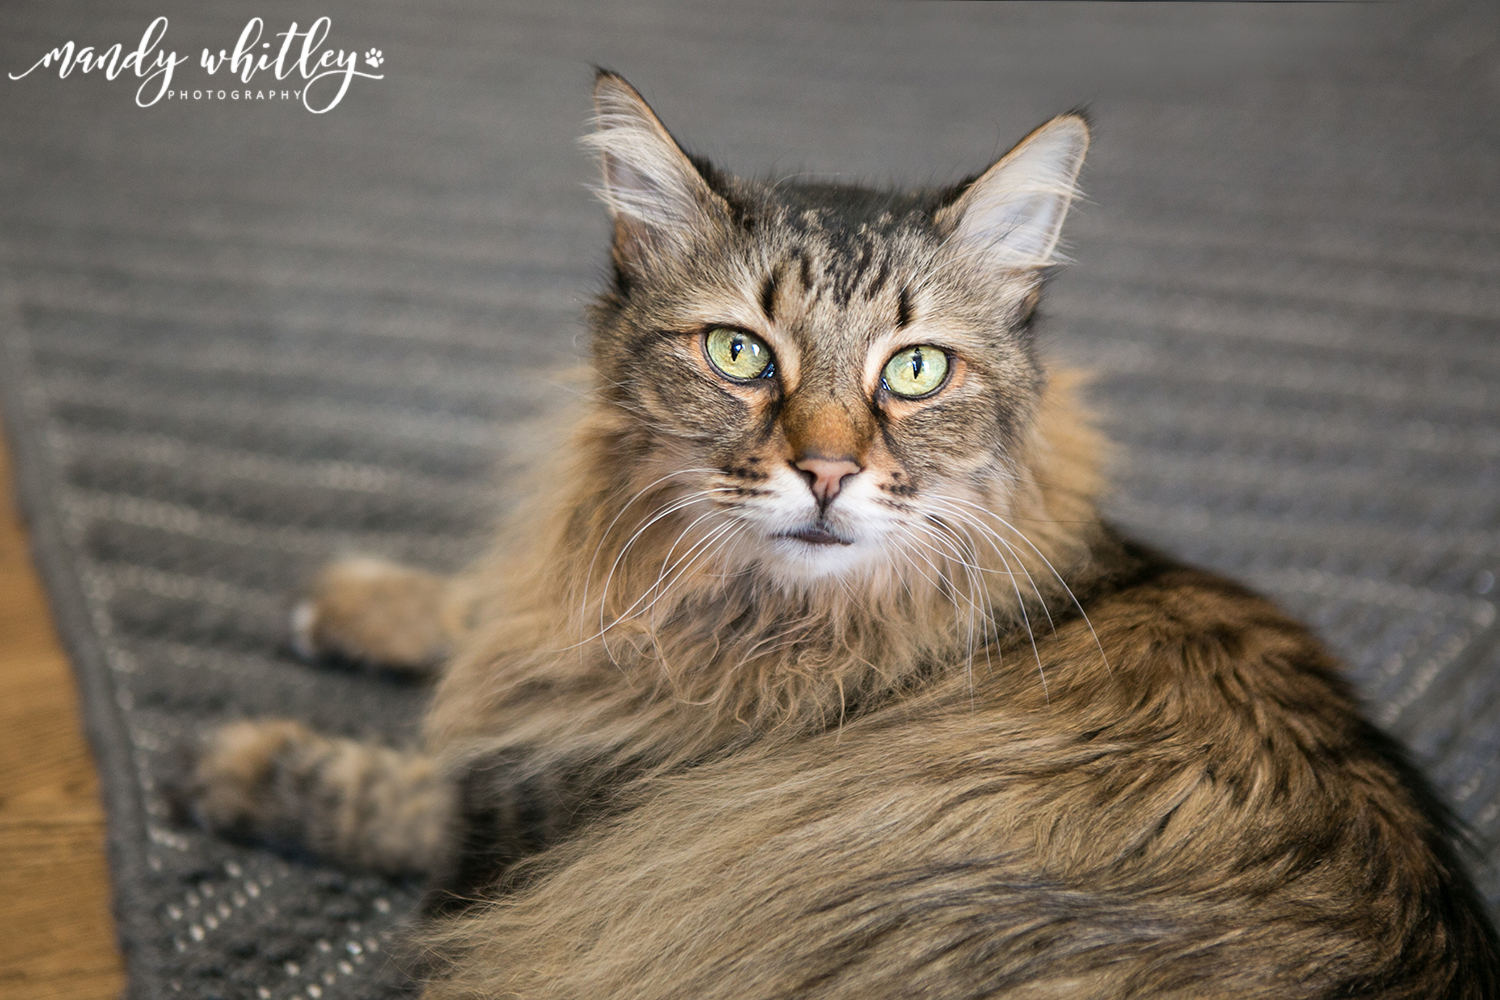 Cat Photographer in Nashville Tennessee